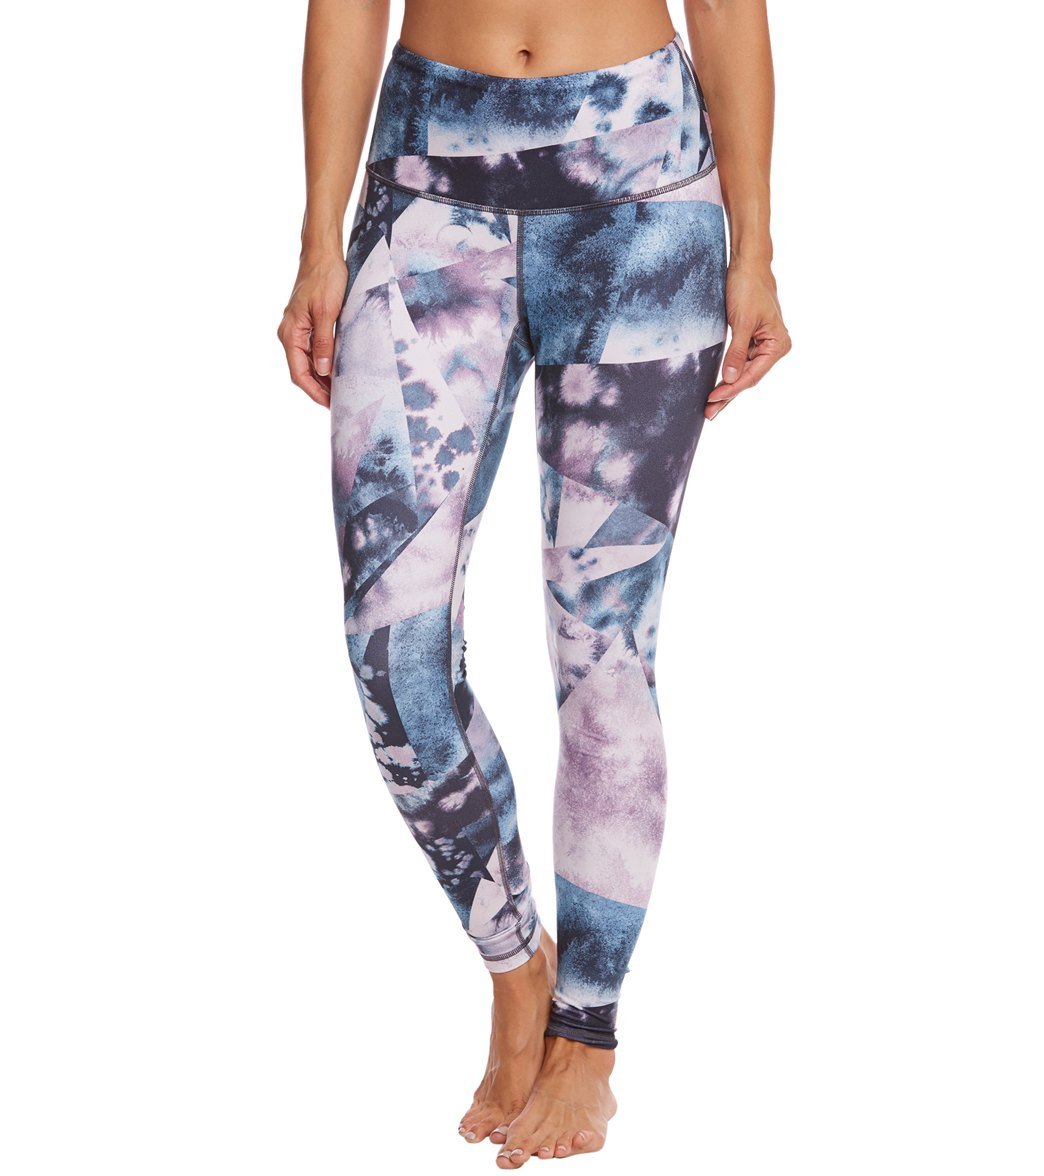 1992d301bf9ce Lucy Women's Printed Studio High Rise Hatha Legging at SwimOutlet.com -  Free Shipping